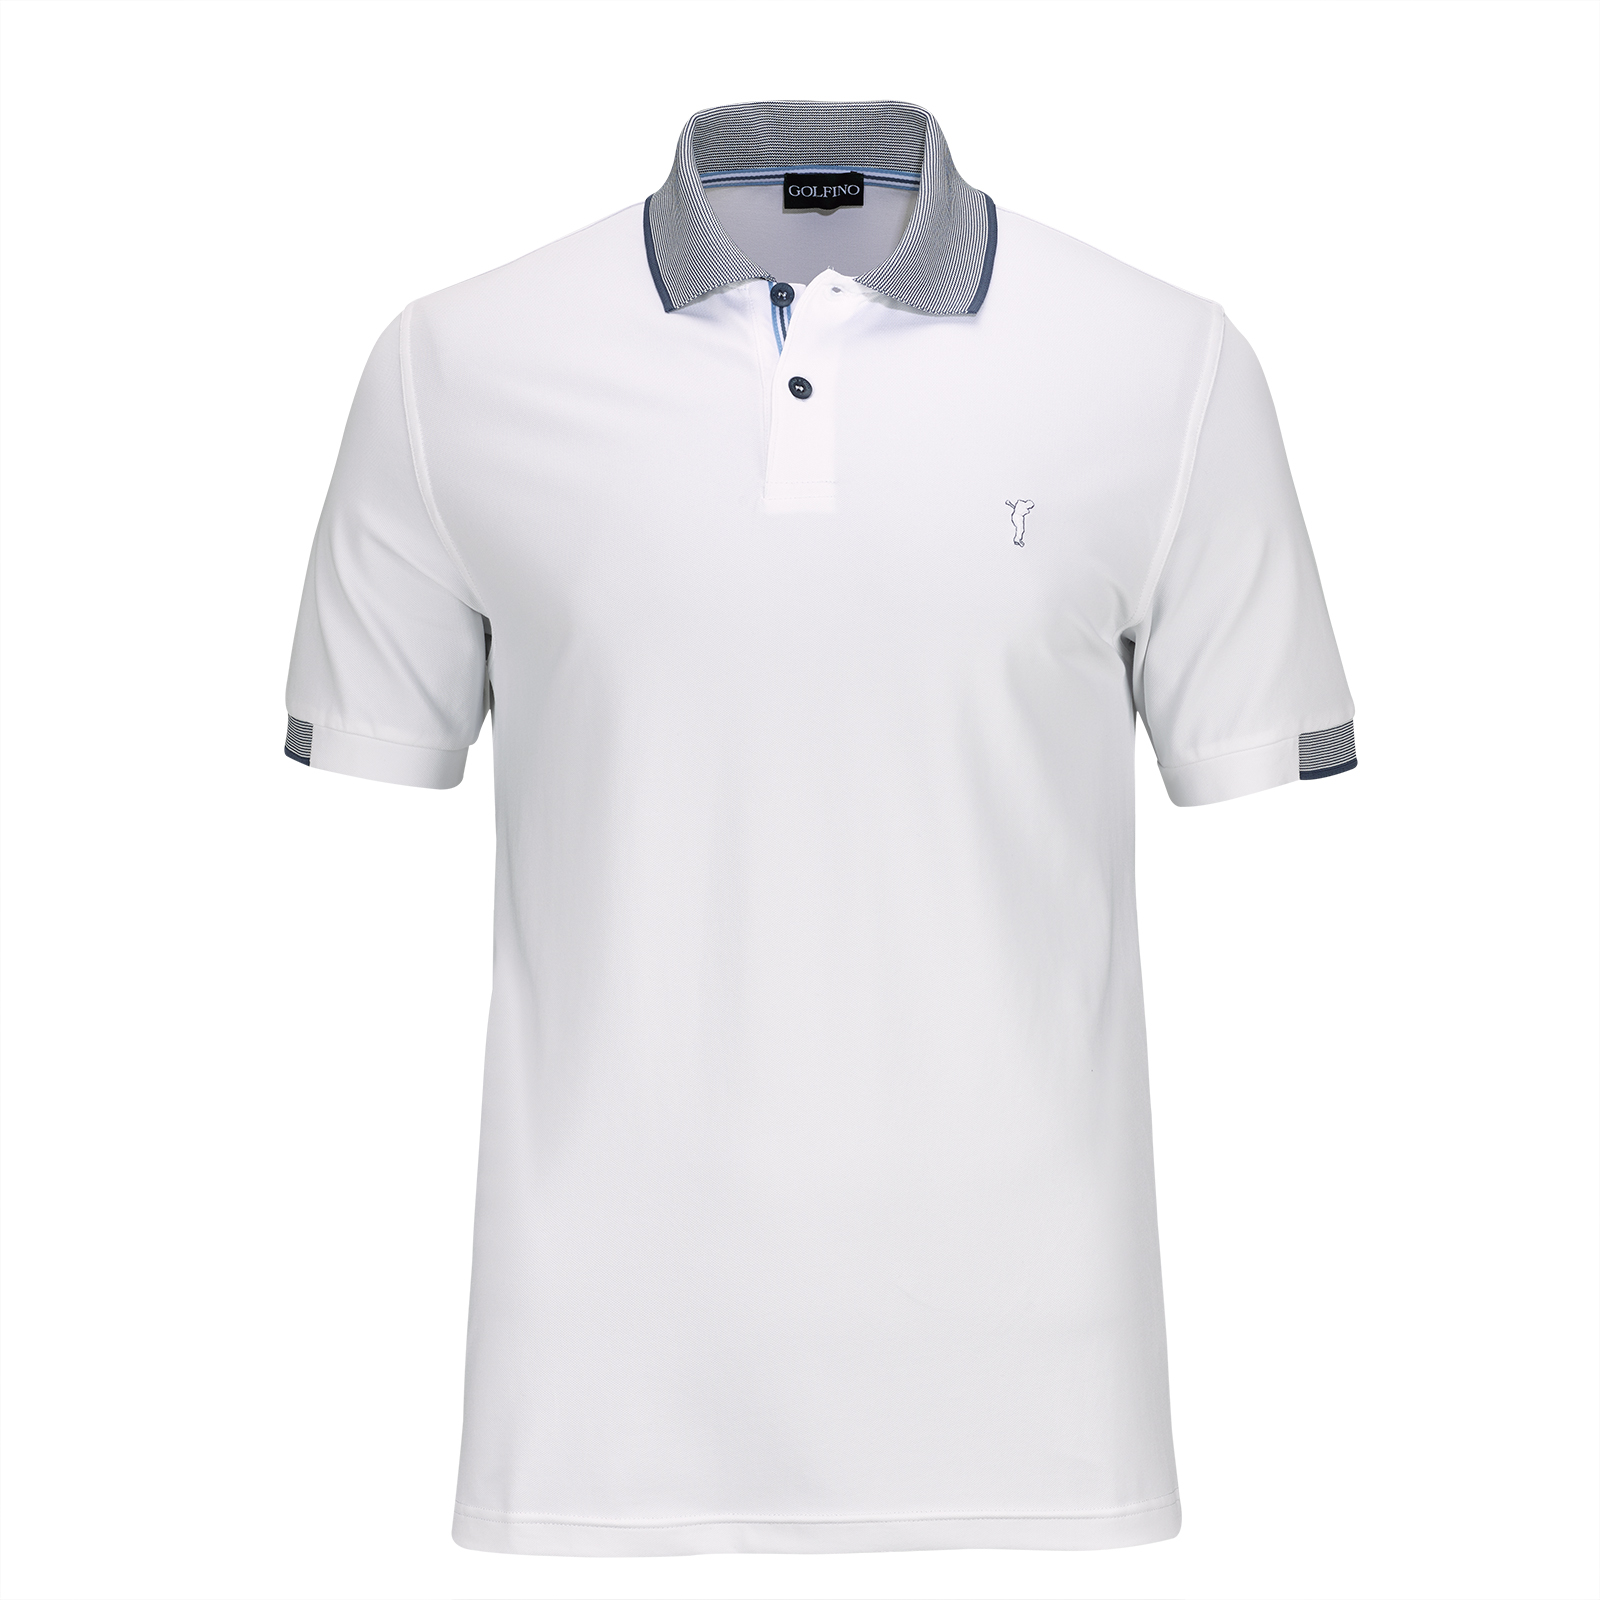 Summery men's sun protection golf polo Resort Wear